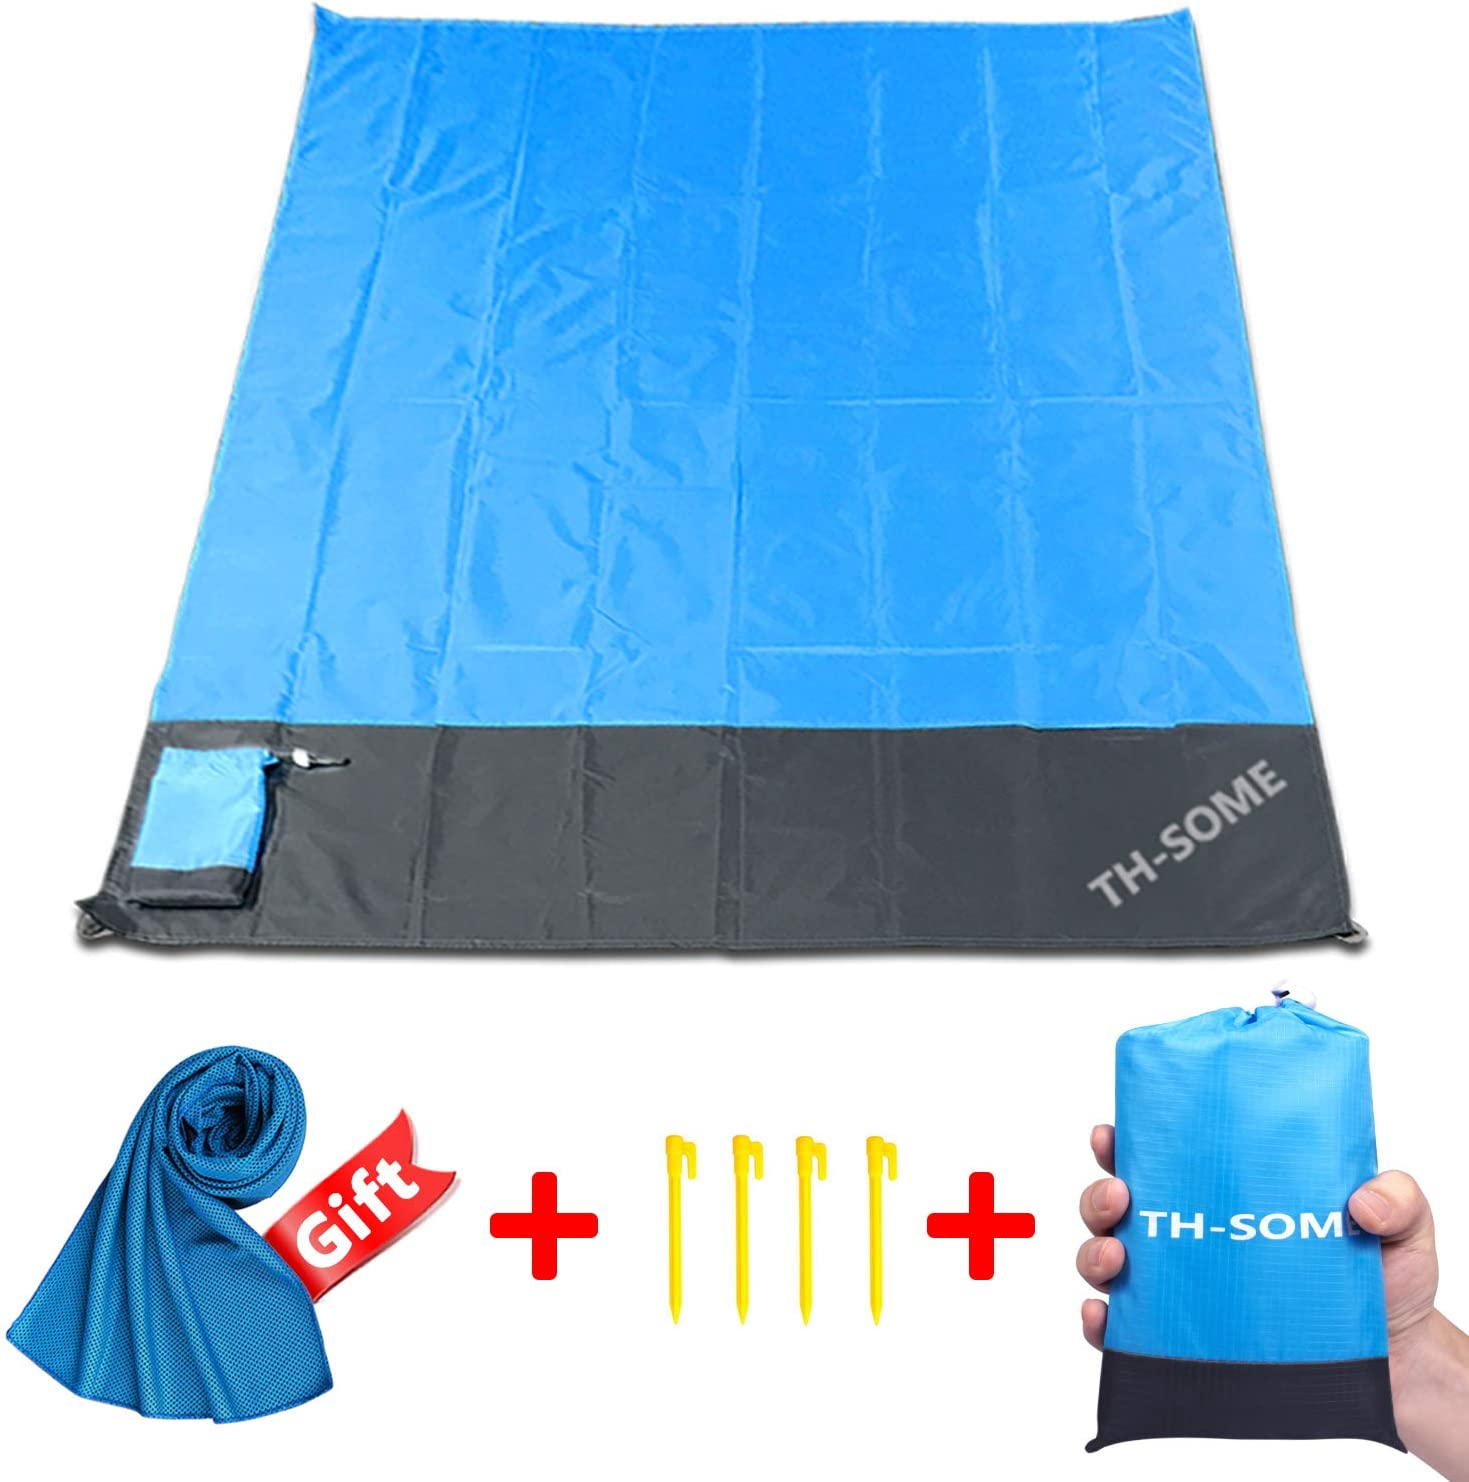 Th-some Manta Picnic Playa Impermeable Alfombra Playa 200 * 140cm + Enviar Toalla de Microfibra, Esterilla Playa Plegable portátil Anti-Arena Manta Ideal para La Picnic, Viaje